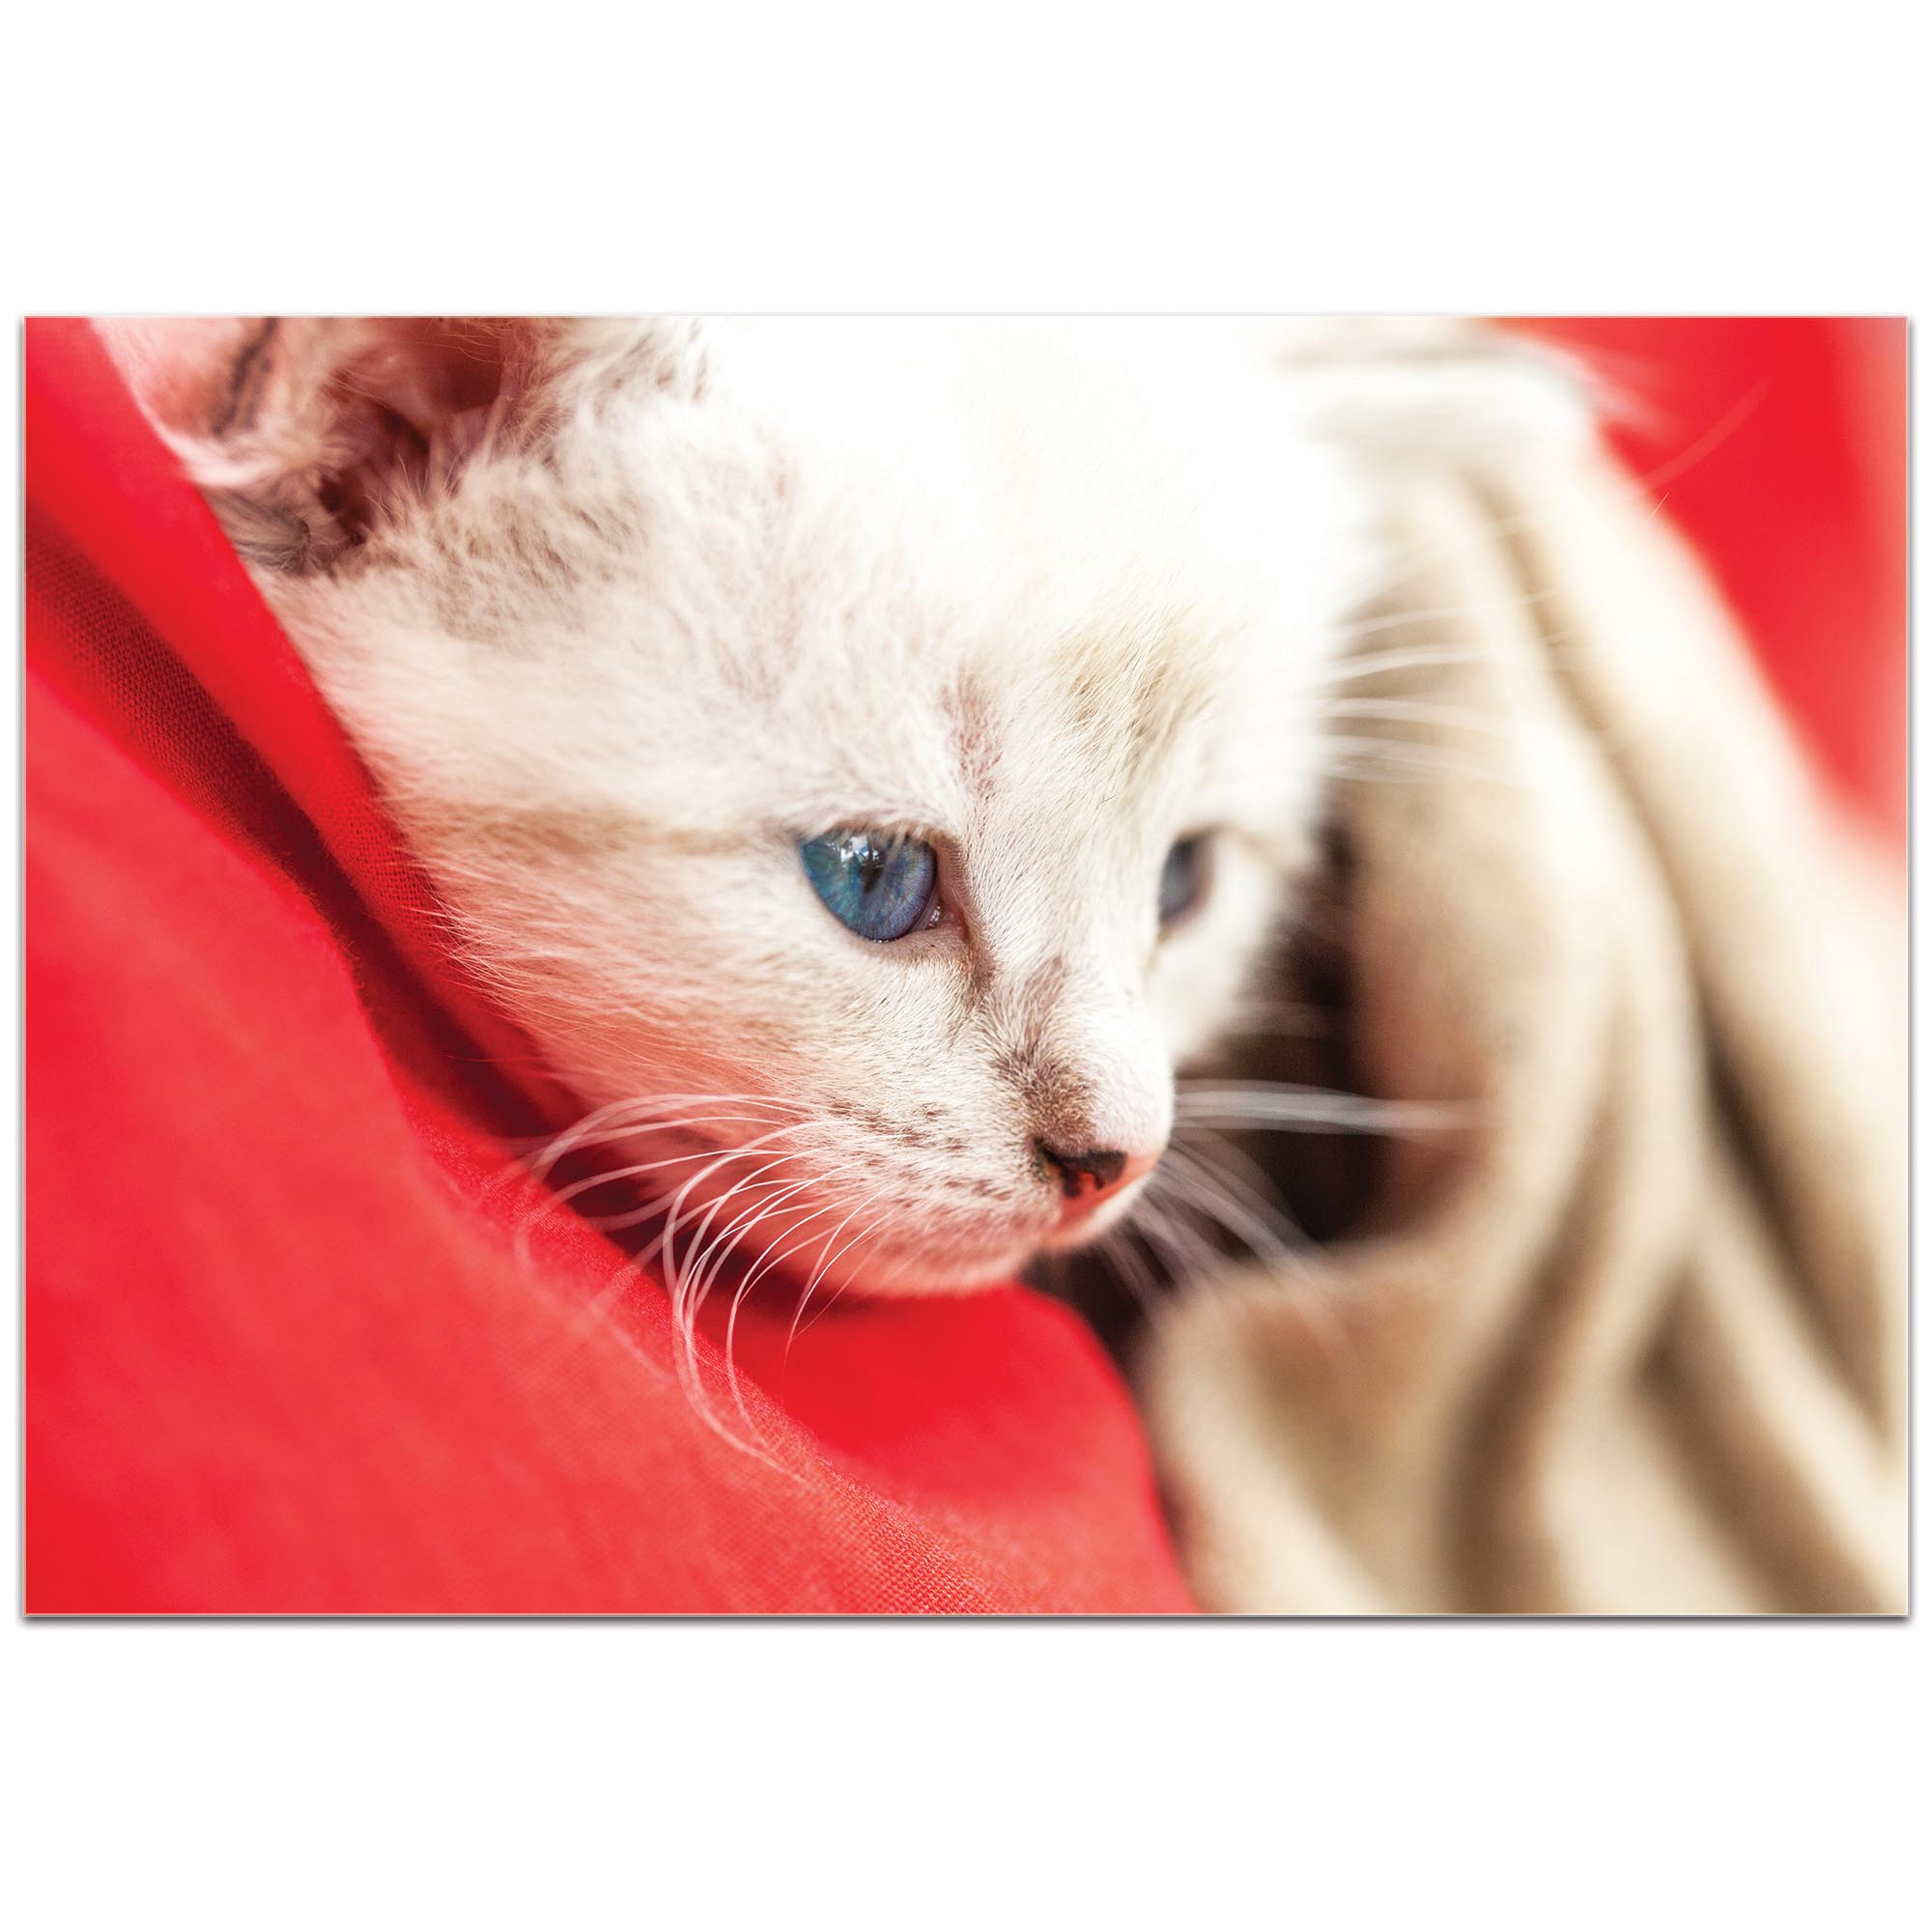 Casual Wall Art 'Bundled Kitten' - Wildlife Decor on Metal or Plexiglass - Image 2